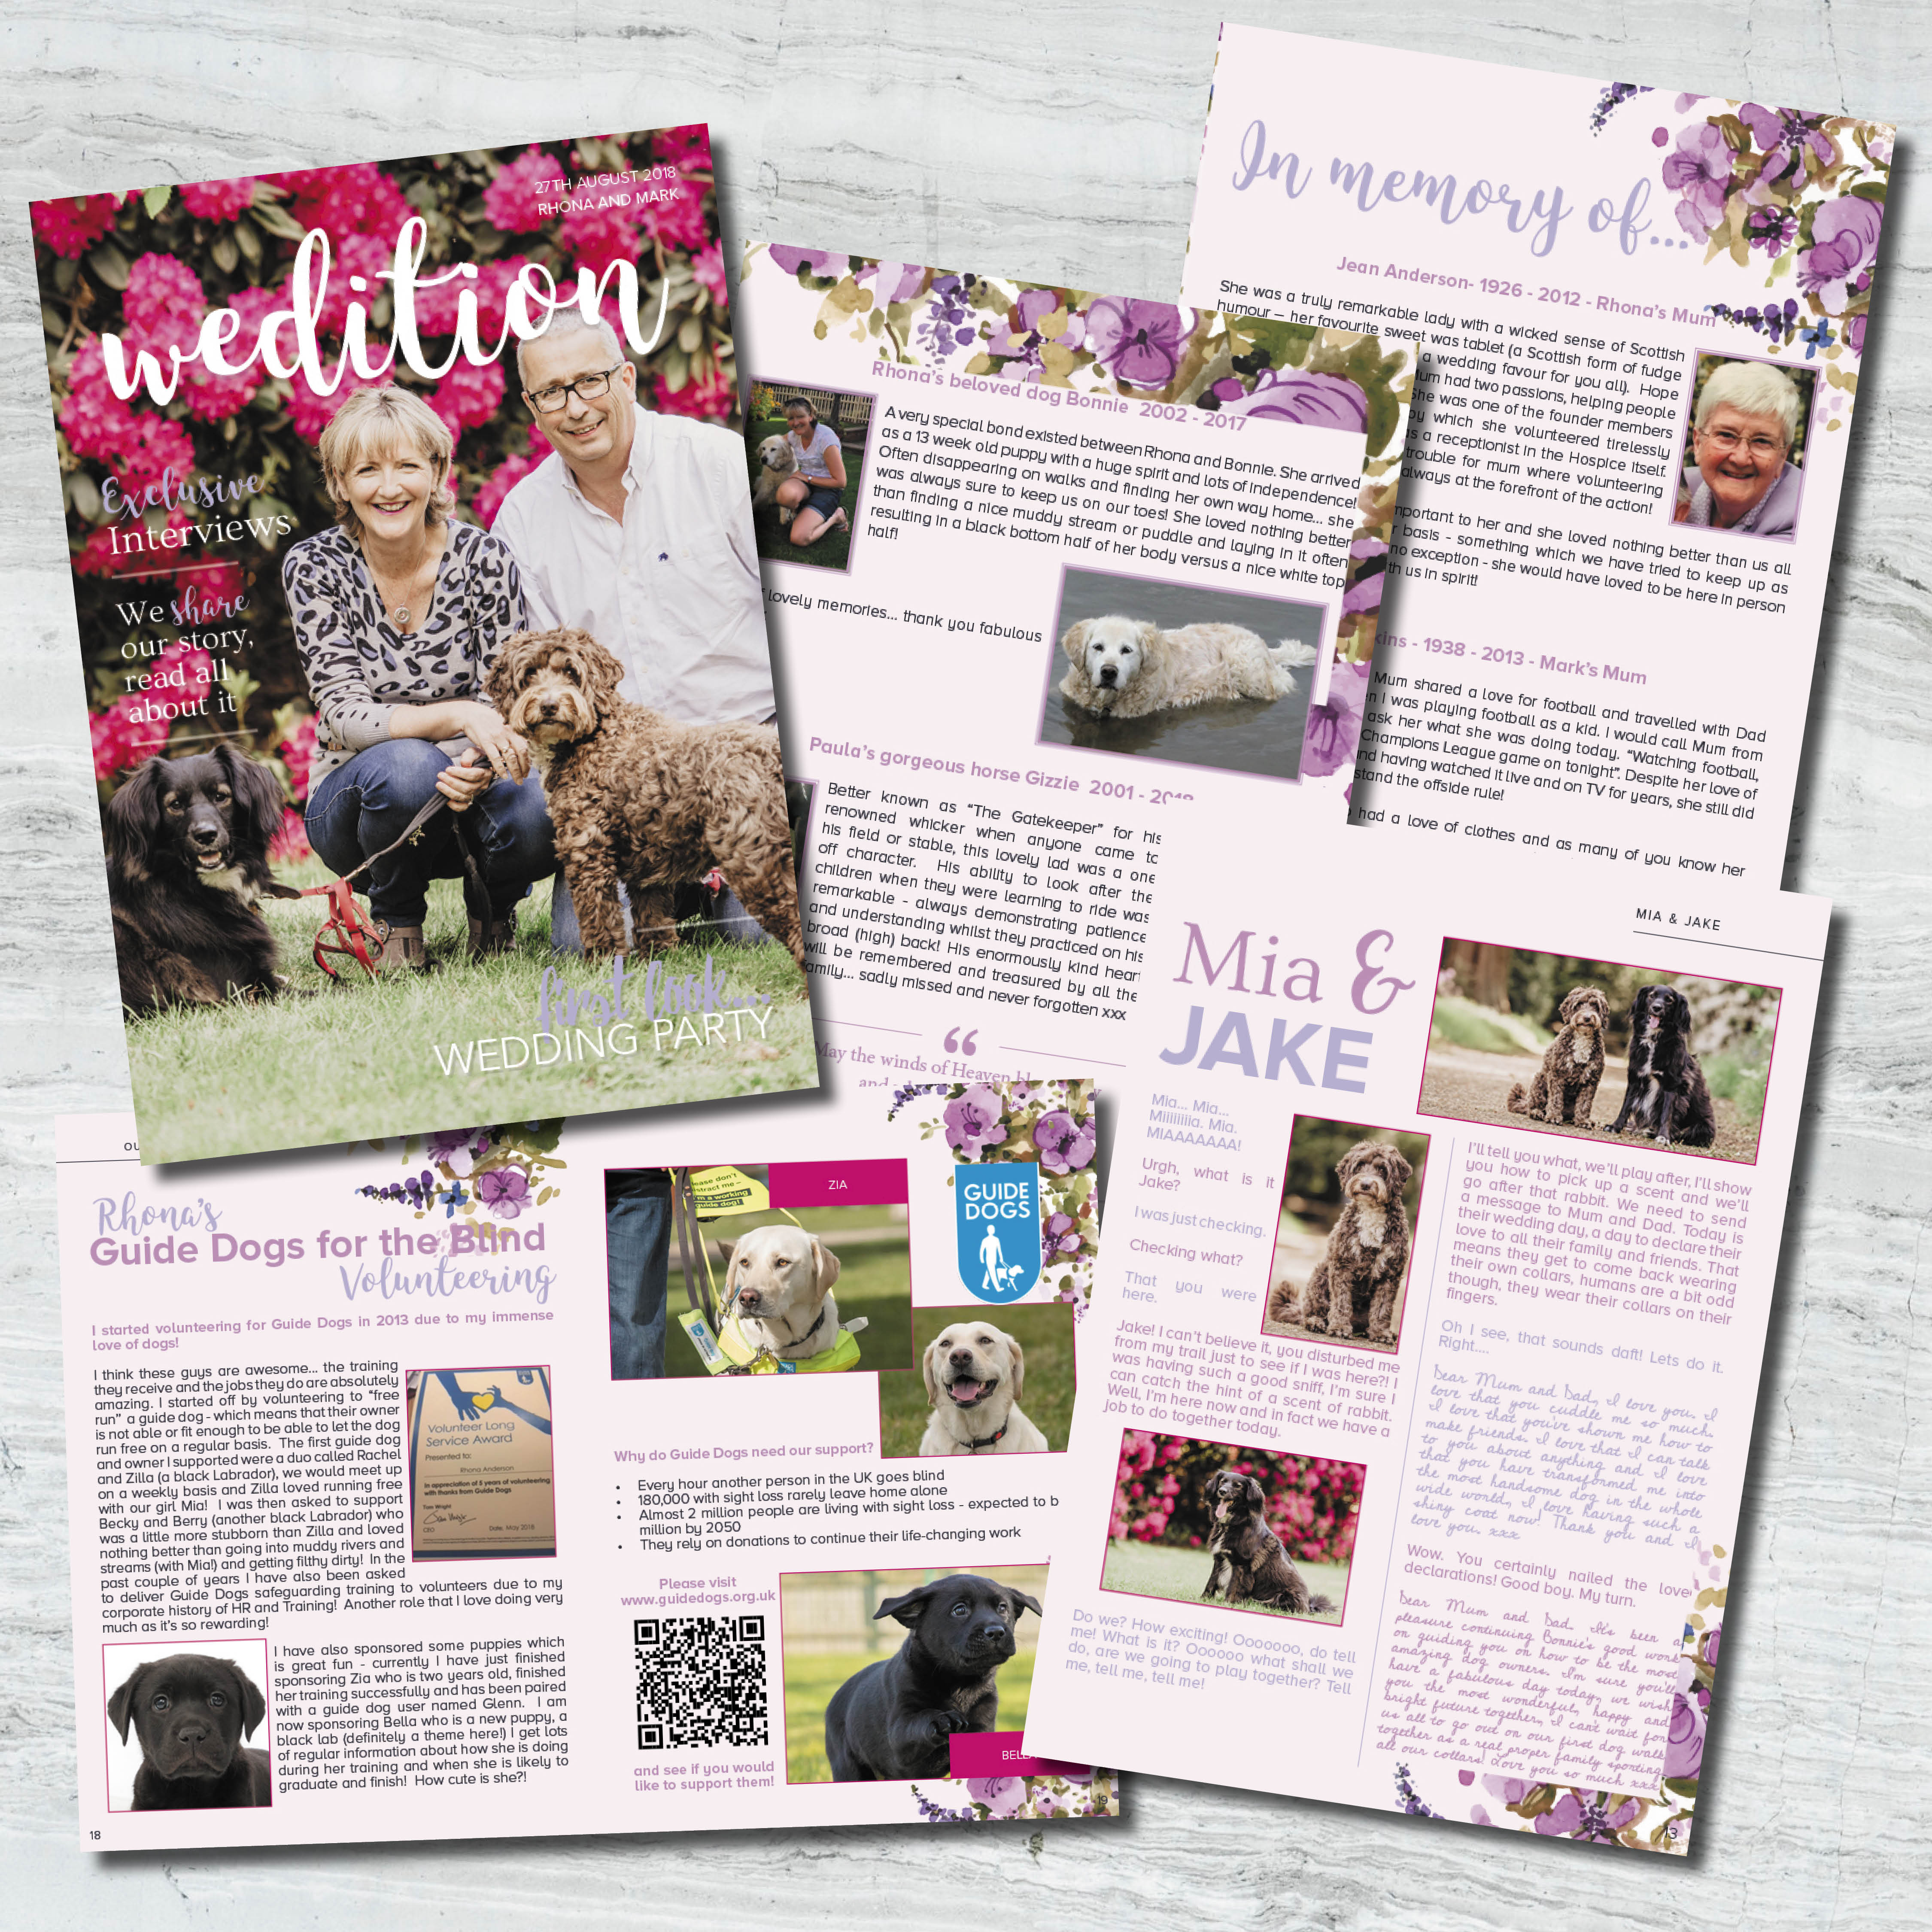 animal wedding stationery, Making your pet a memorable part of your wedding day, guide dogs for the blind wedding